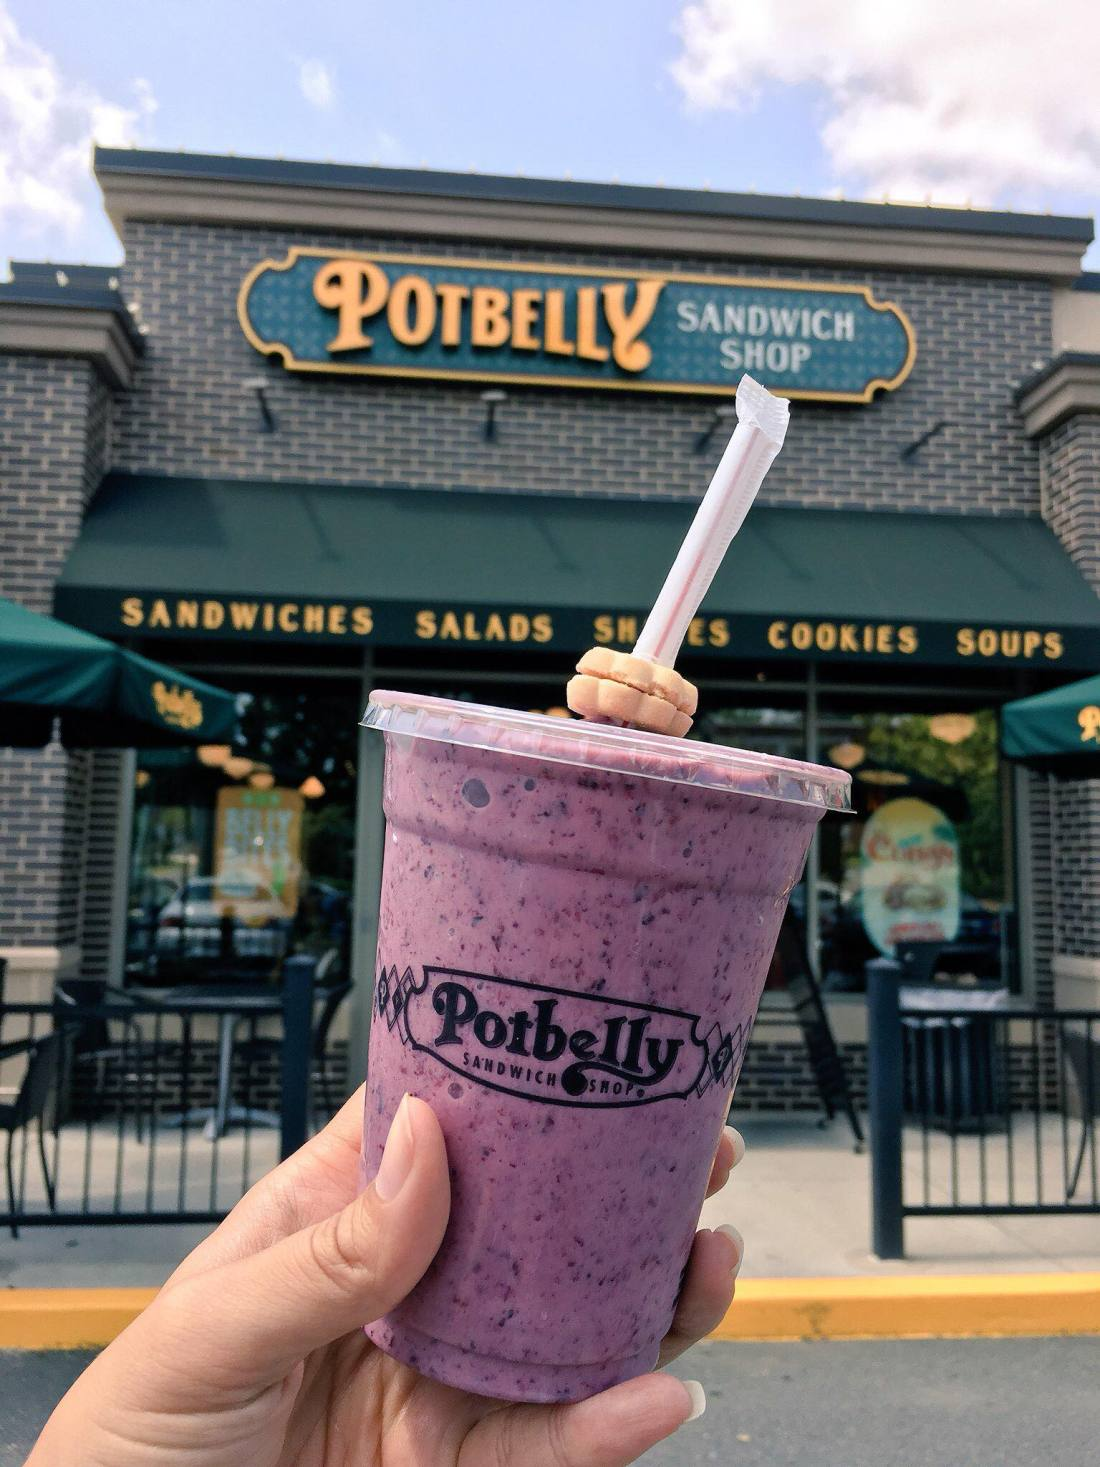 "Free Shake Friday at Potbelly Mixed Berry Smoothie. July 27th is Free Shake Friday at Potbelly, claim your free shake or smoothie with any purchase by just saying ""it's free shake friday""."